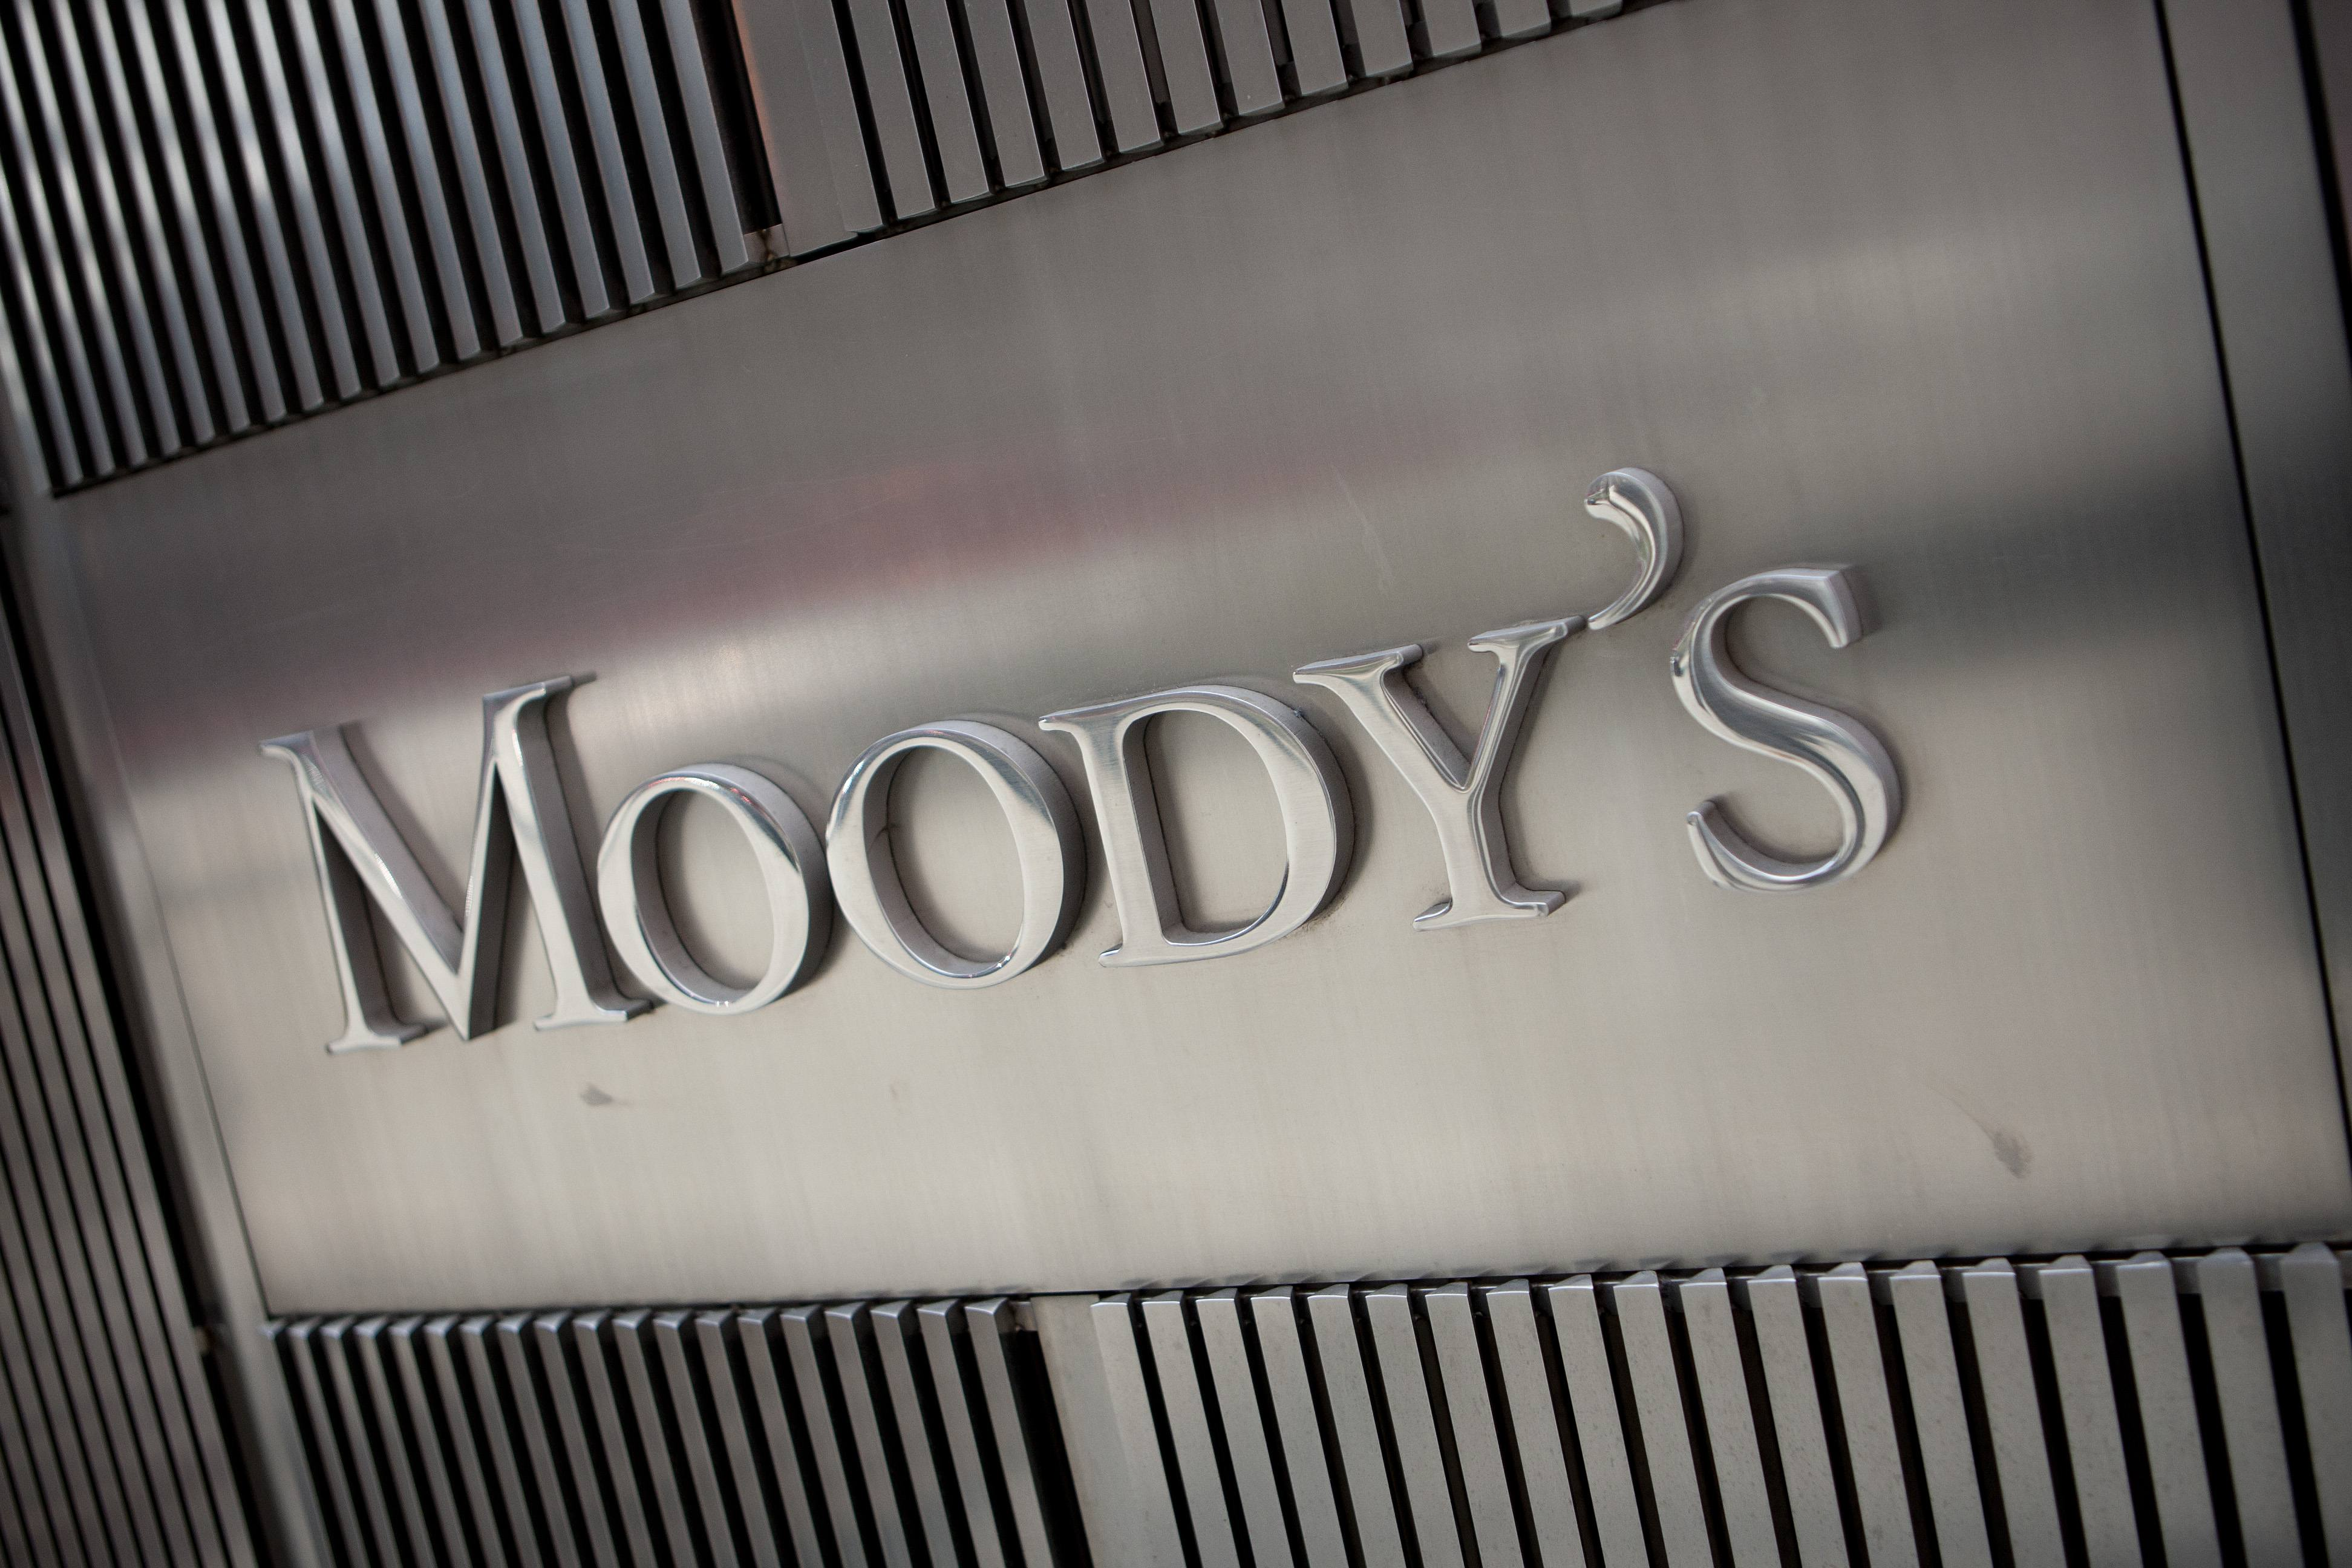 Moody's Sees 18% NPL, Profit Slide Among Nigerian Banks, Rates Sector Stable